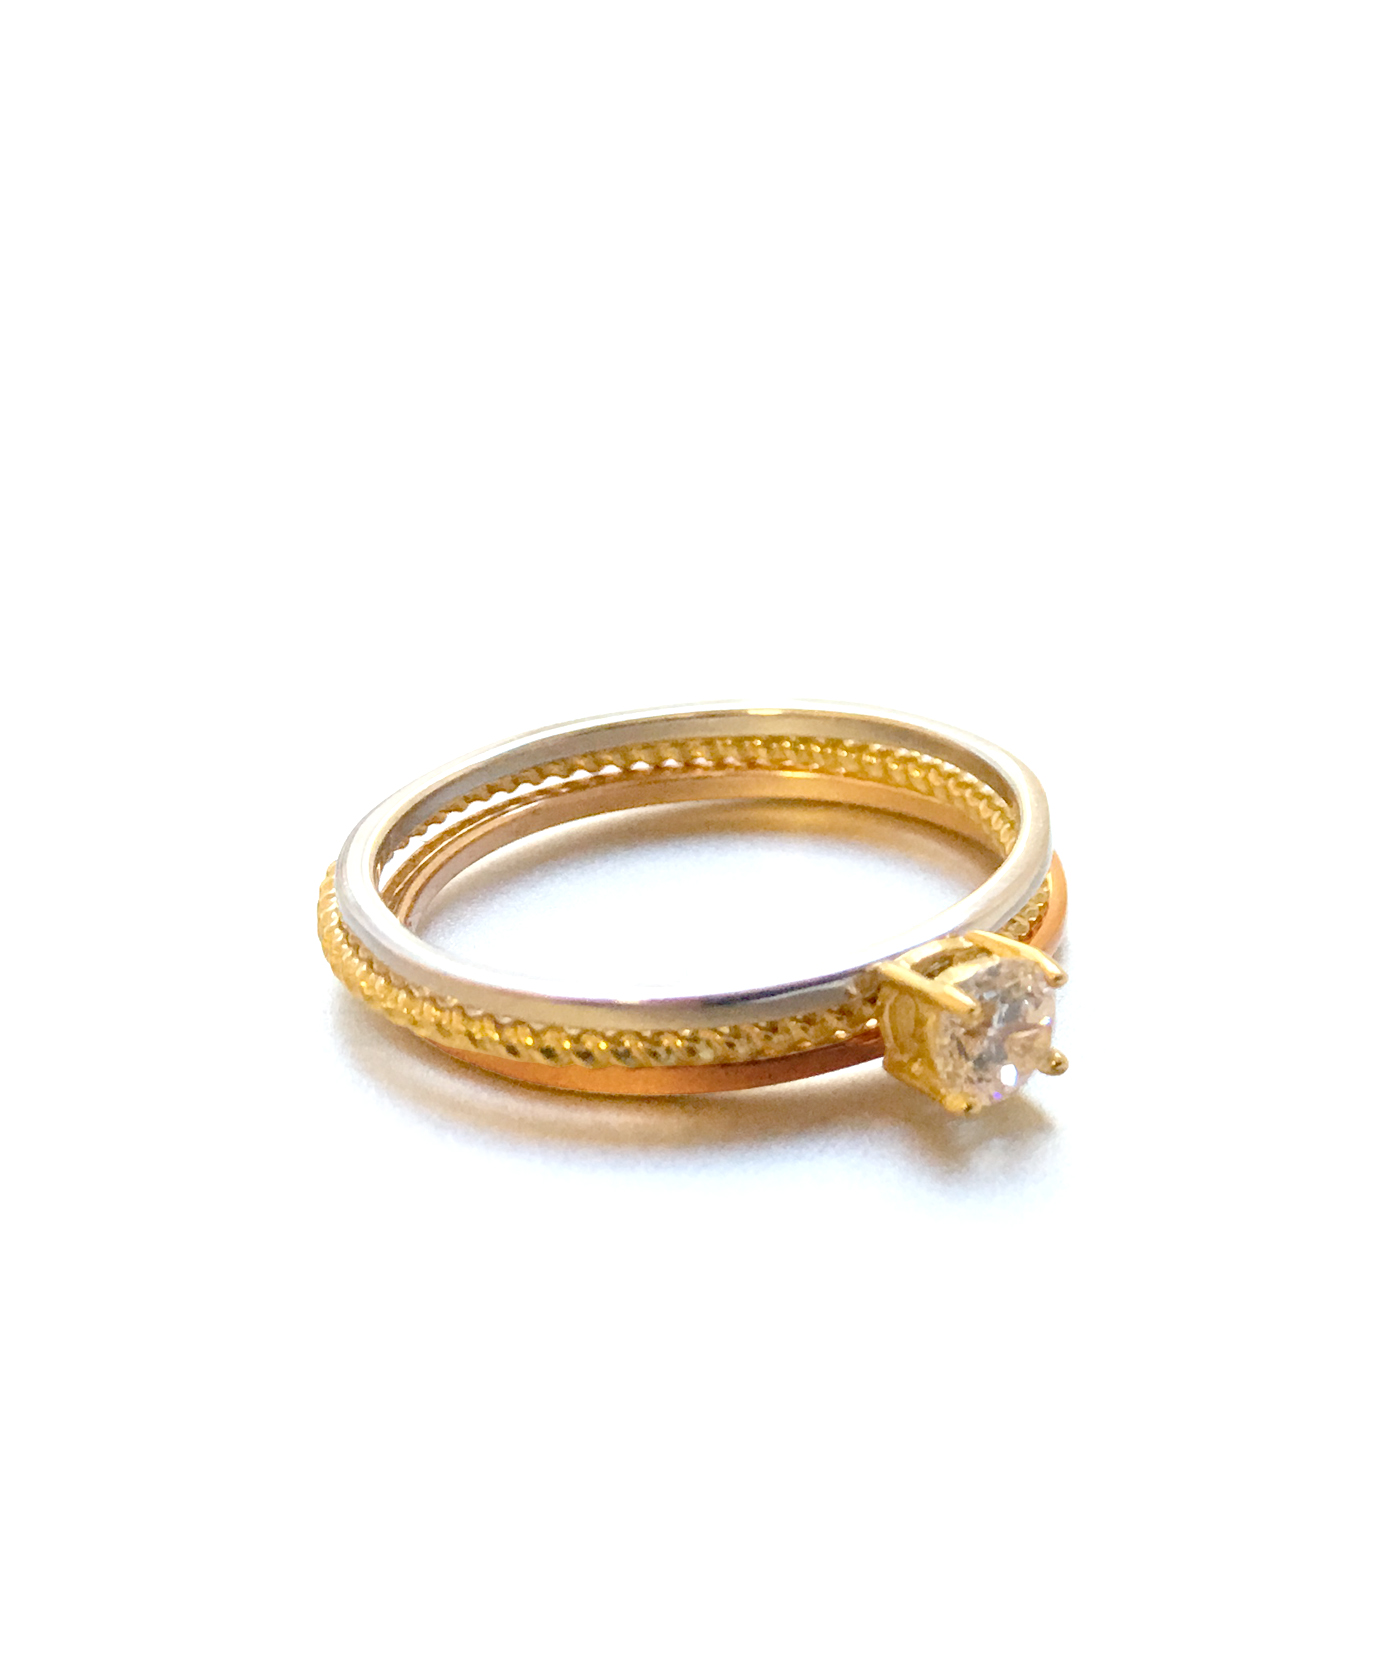 bands simple marie altana dainty band stacking gold unique rings by ring thin diamond products rose in